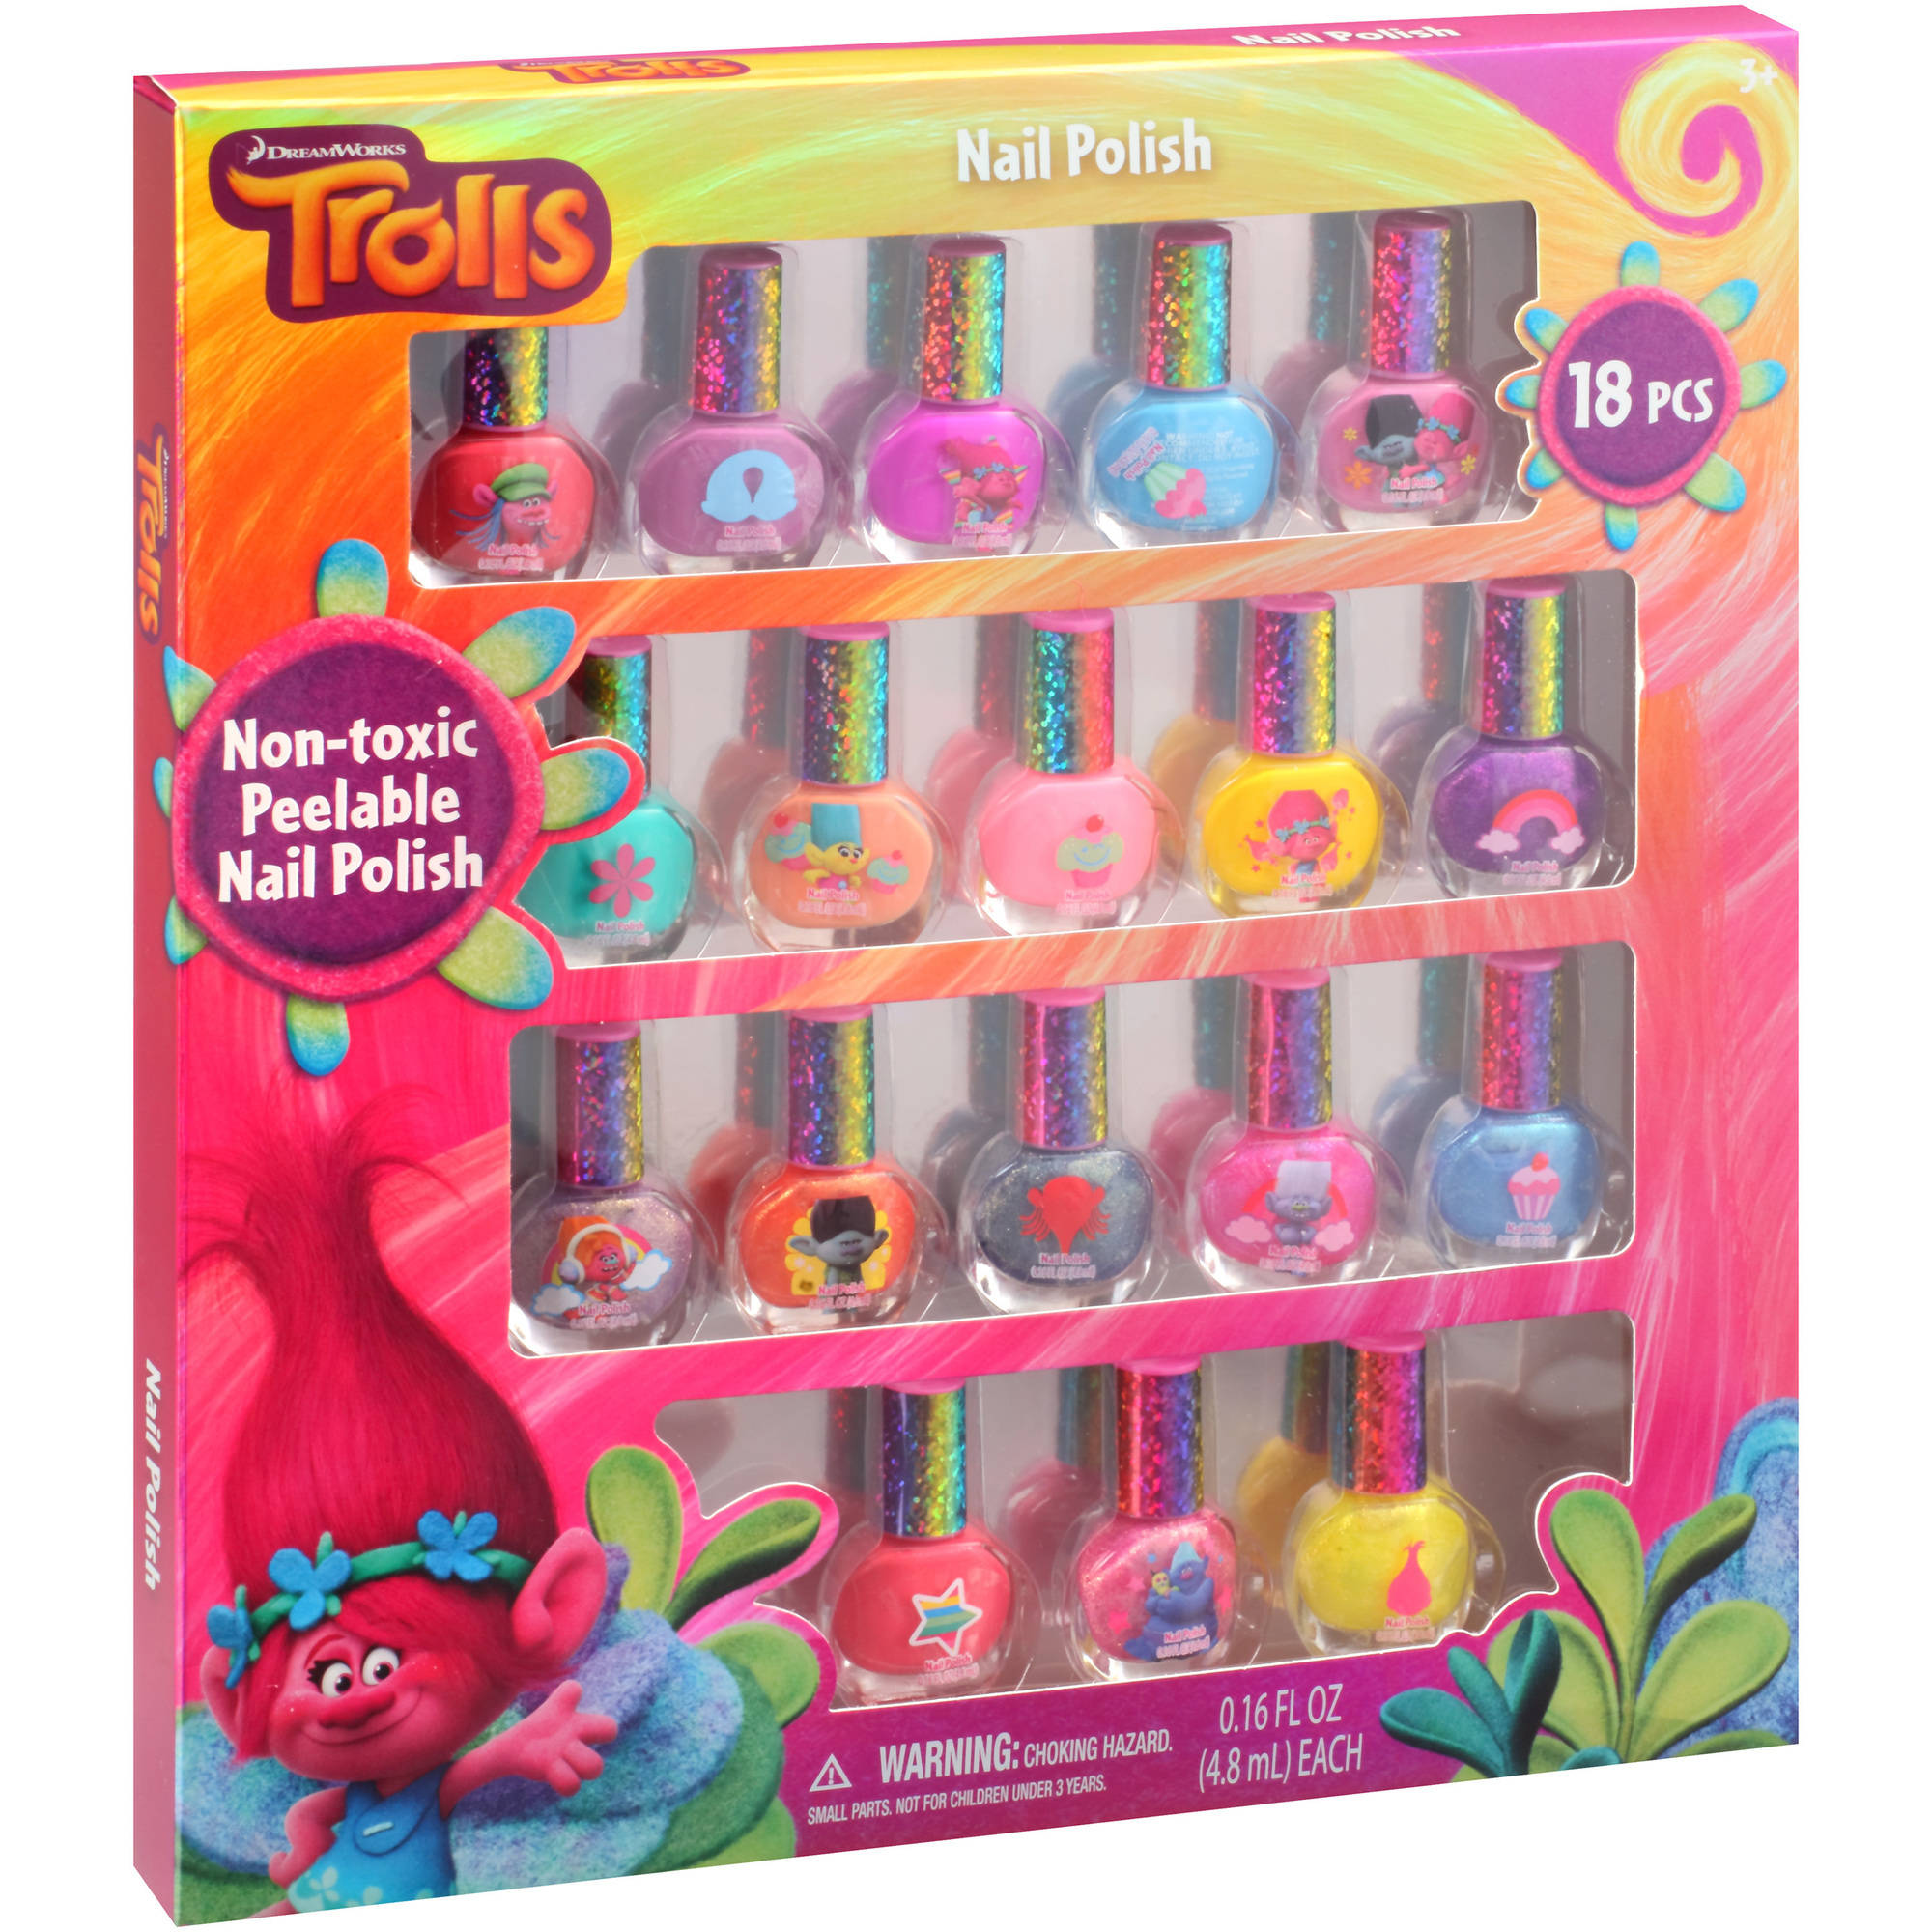 Townley Inc. DreamWorks Trolls Nail Polish Kit, 0.16 fl oz, 18 pc